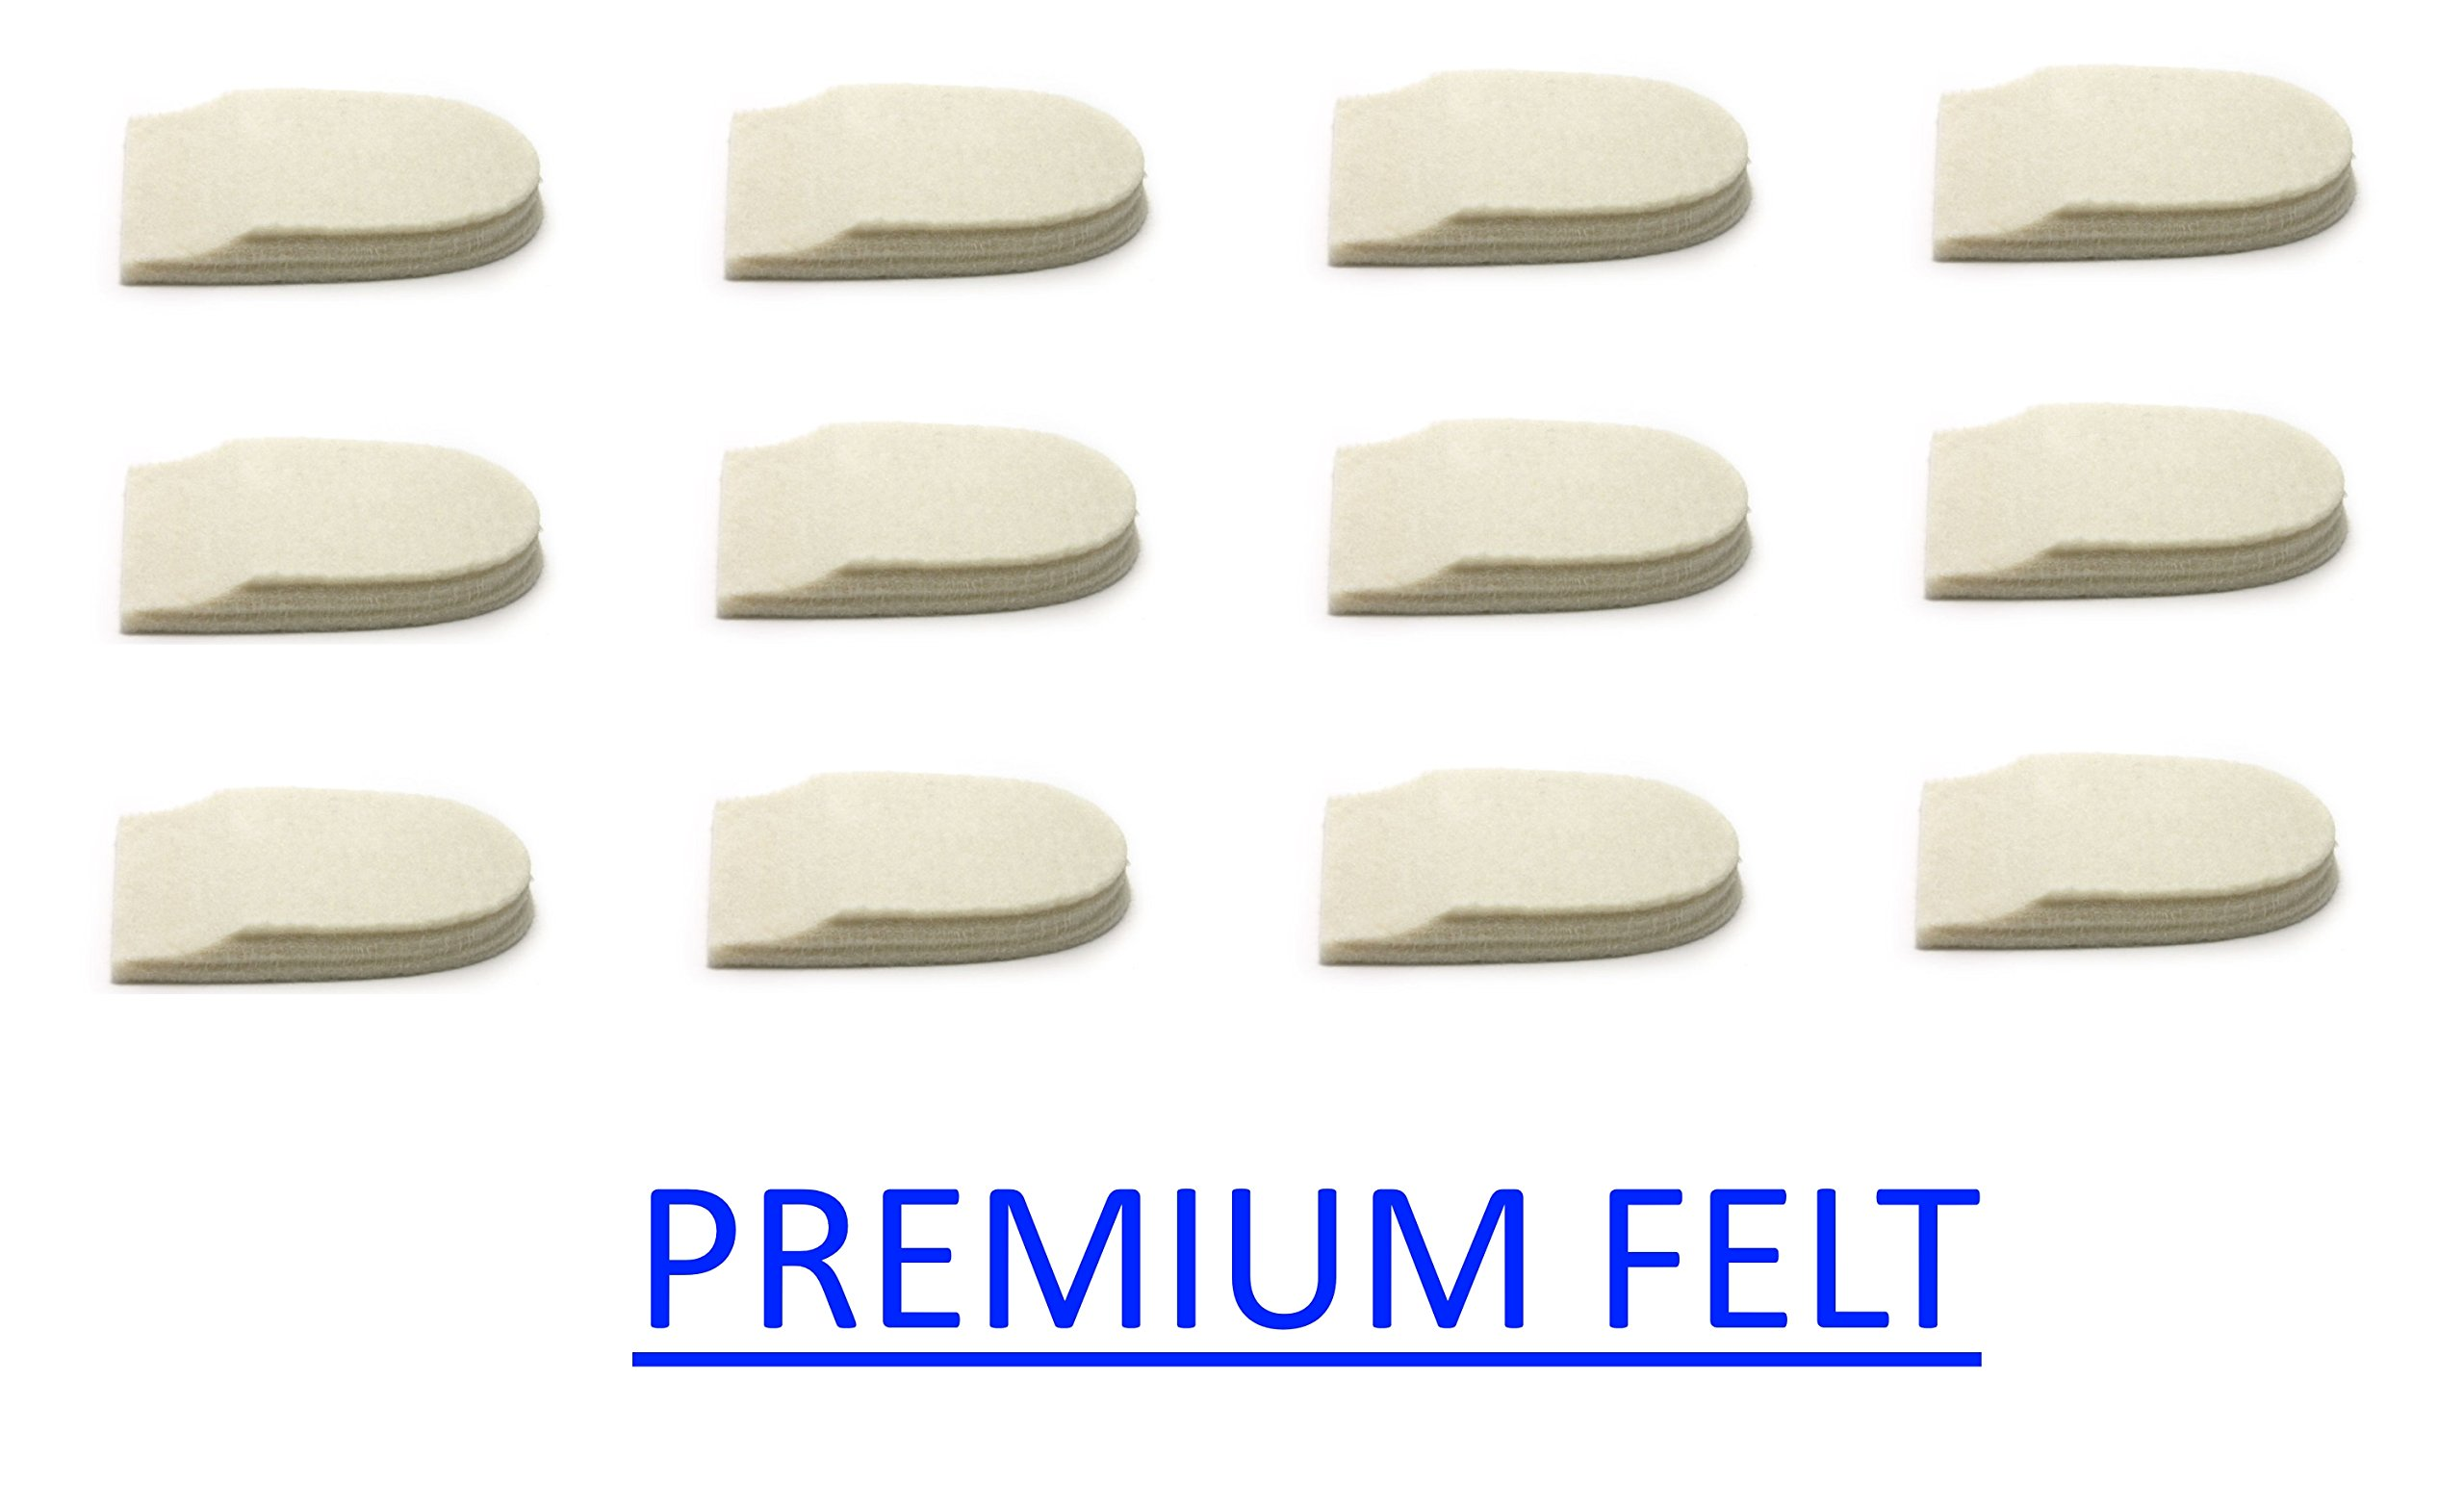 Felt Heel Cushion Pad 1/2'' with Adhesive for Pain Relief - 6 Pairs (12 Pieces) by MARS WELLNESS